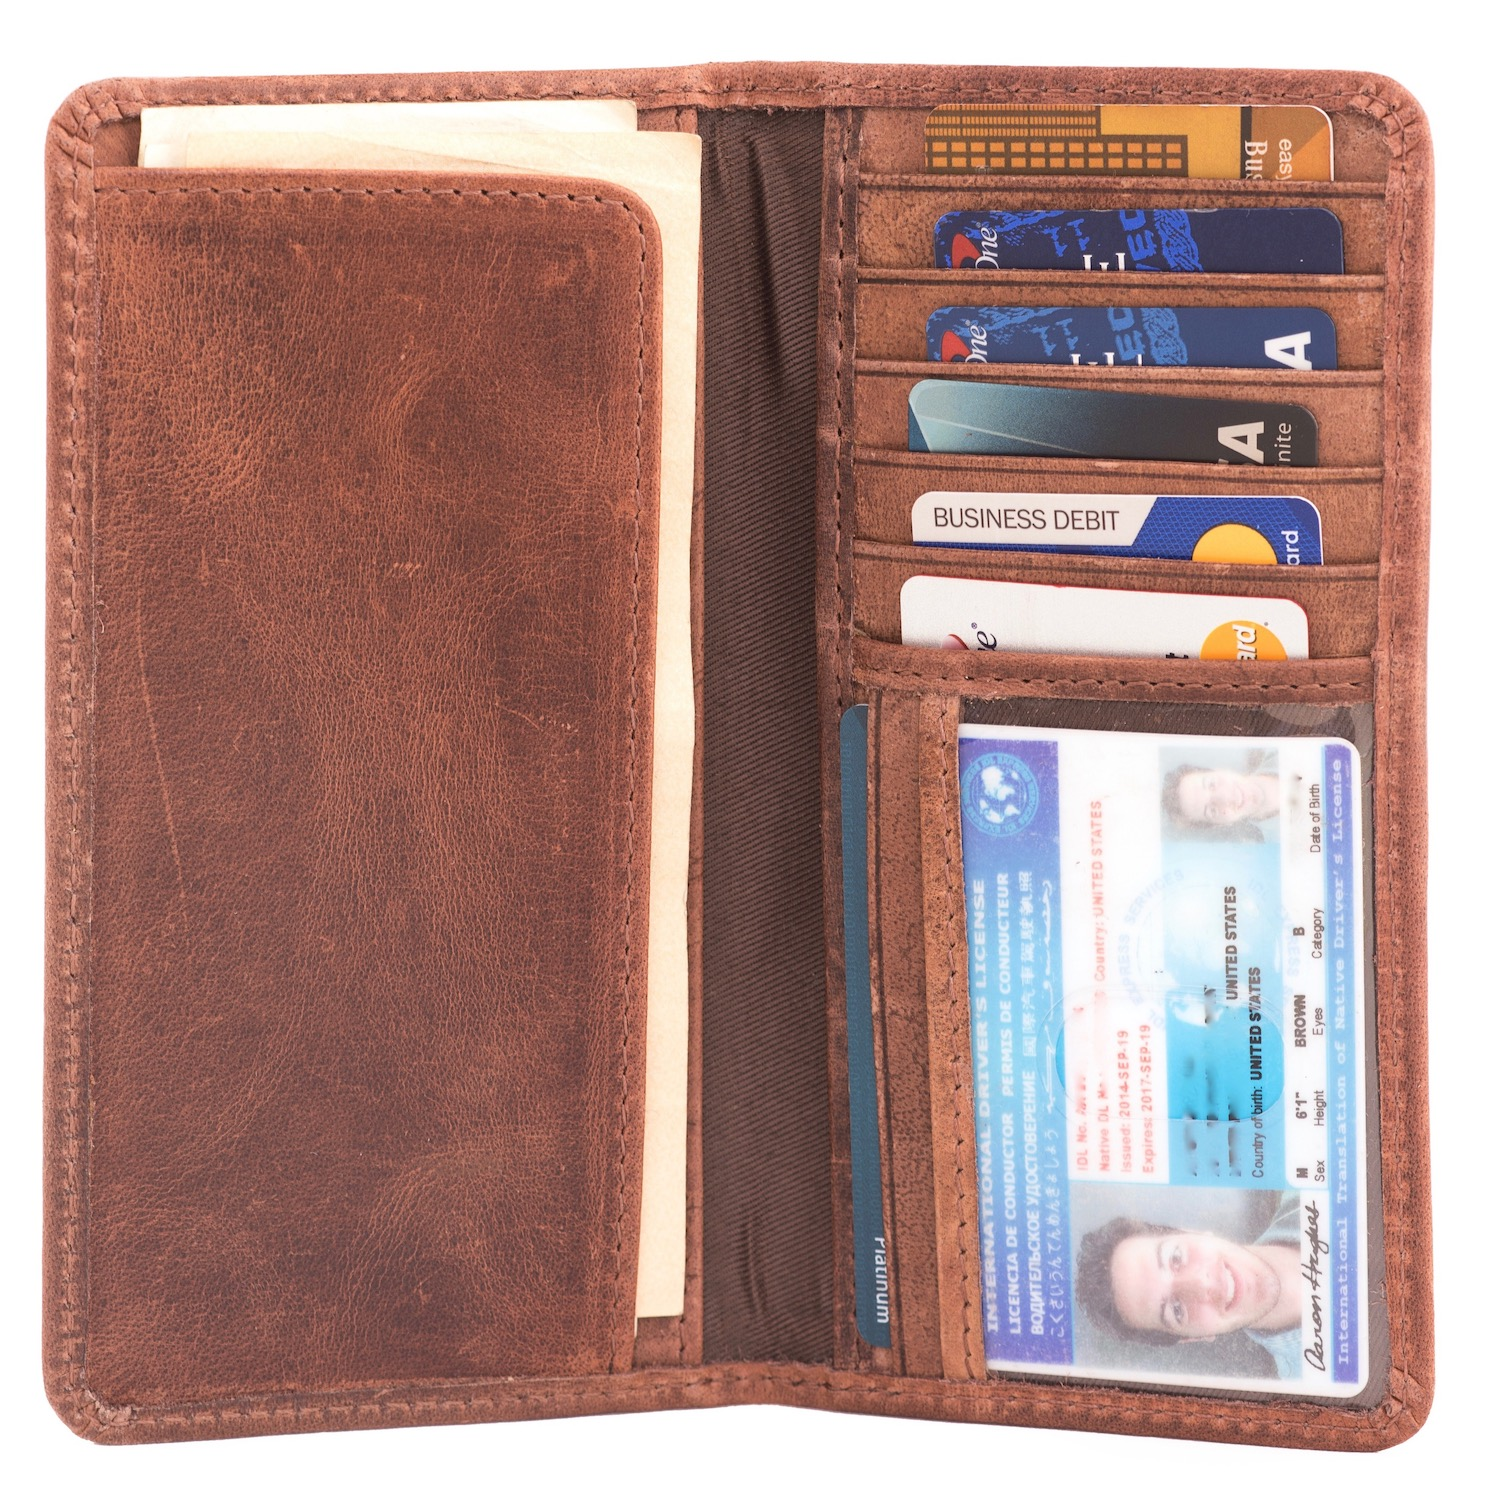 Leather Western CHECKBOOK COVER Handmade You Choose Tooled Design